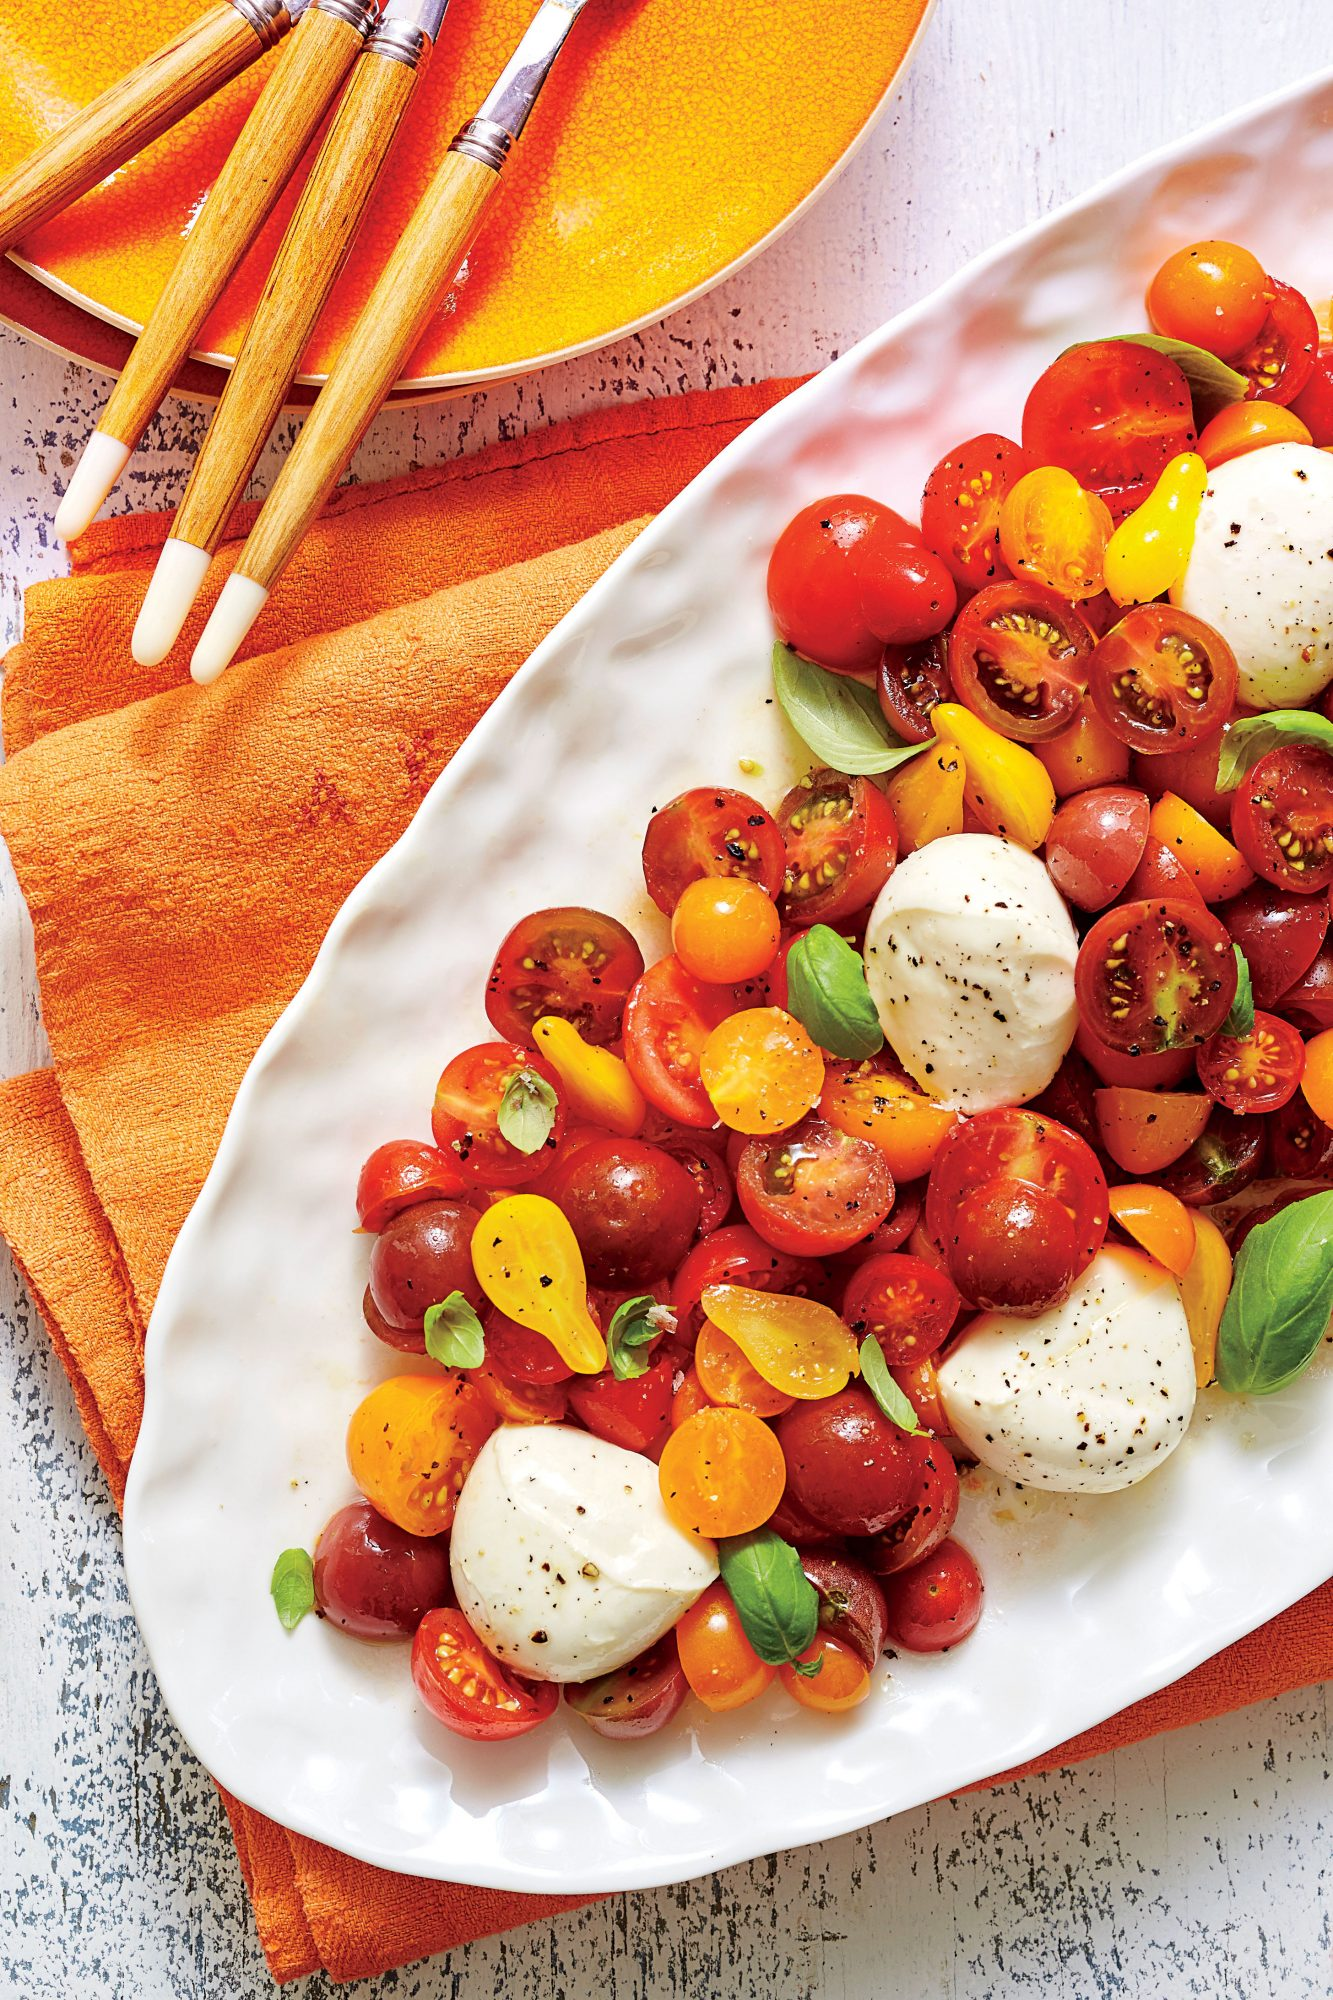 sl-Cherry Tomato Caprese Salad Recipe